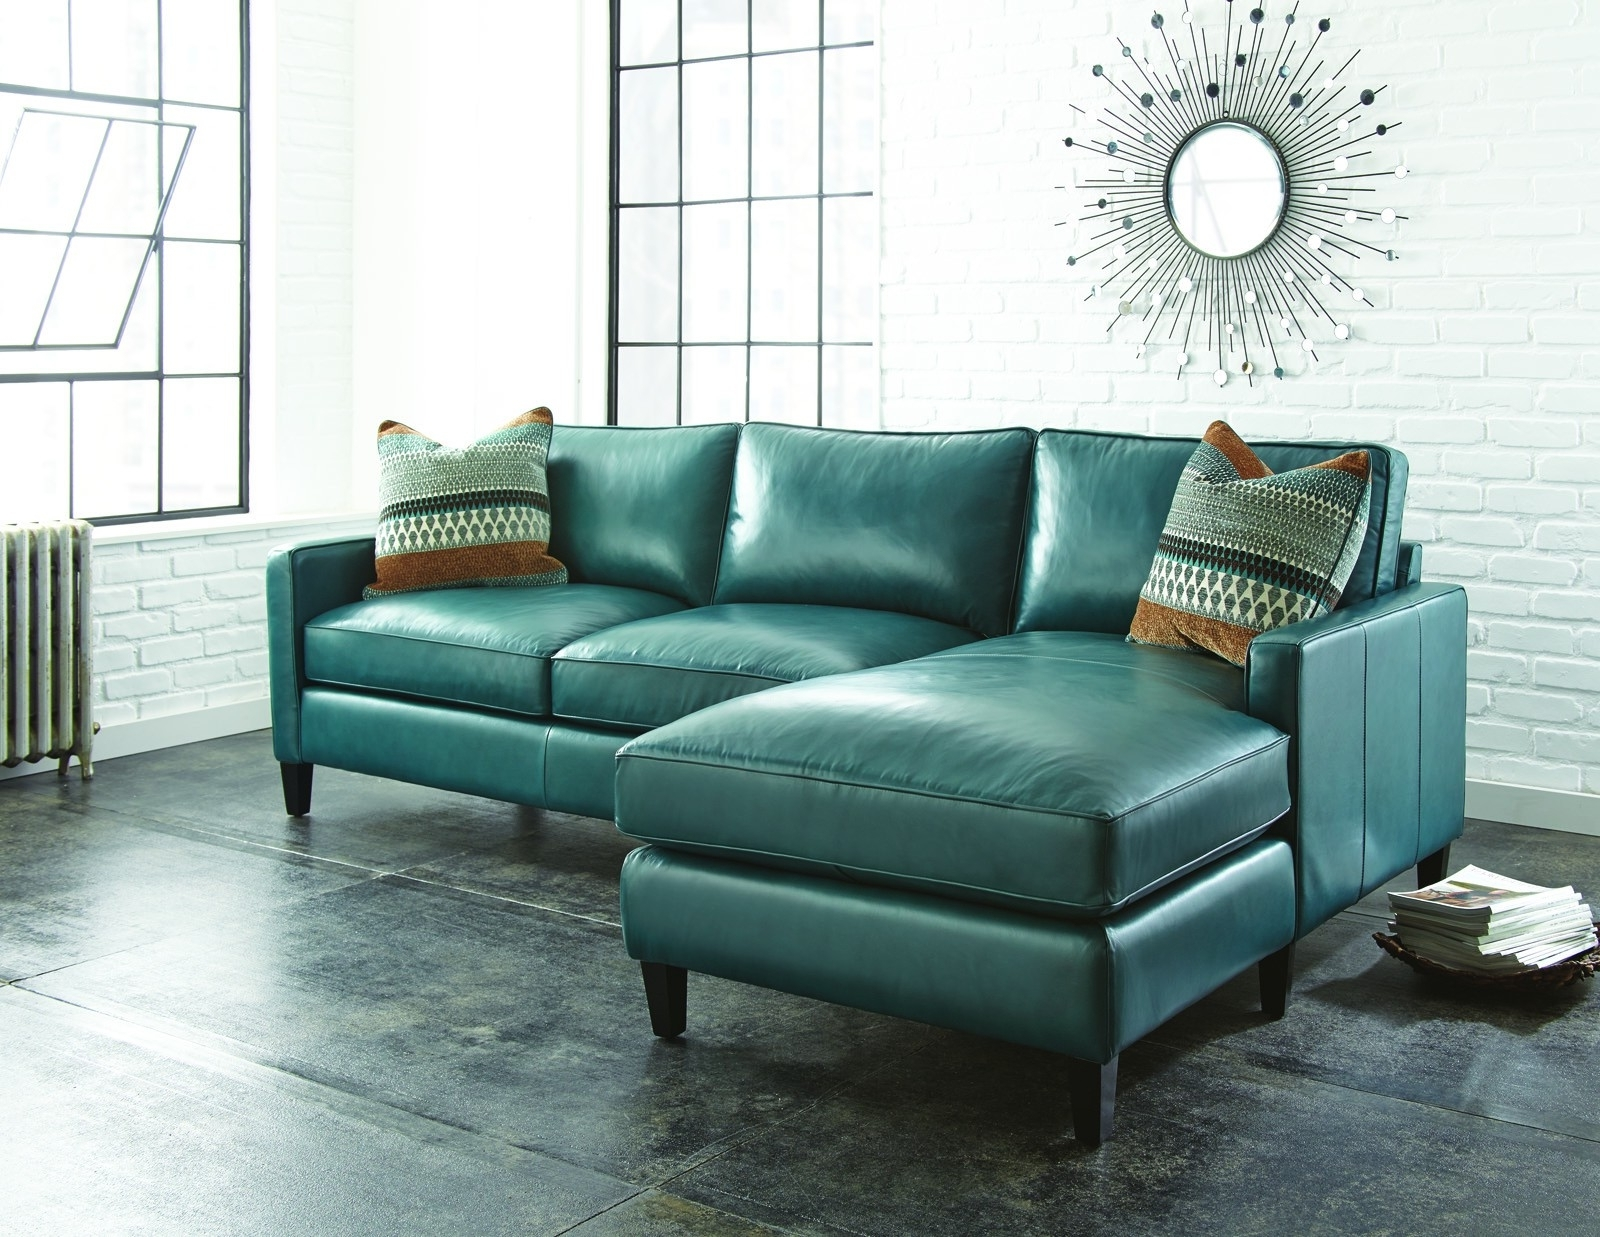 Media Room Sectional Sofas Pertaining To Well Liked New Ideas Green Leather Sectional Sofa And Would You Put This Teal (View 9 of 15)